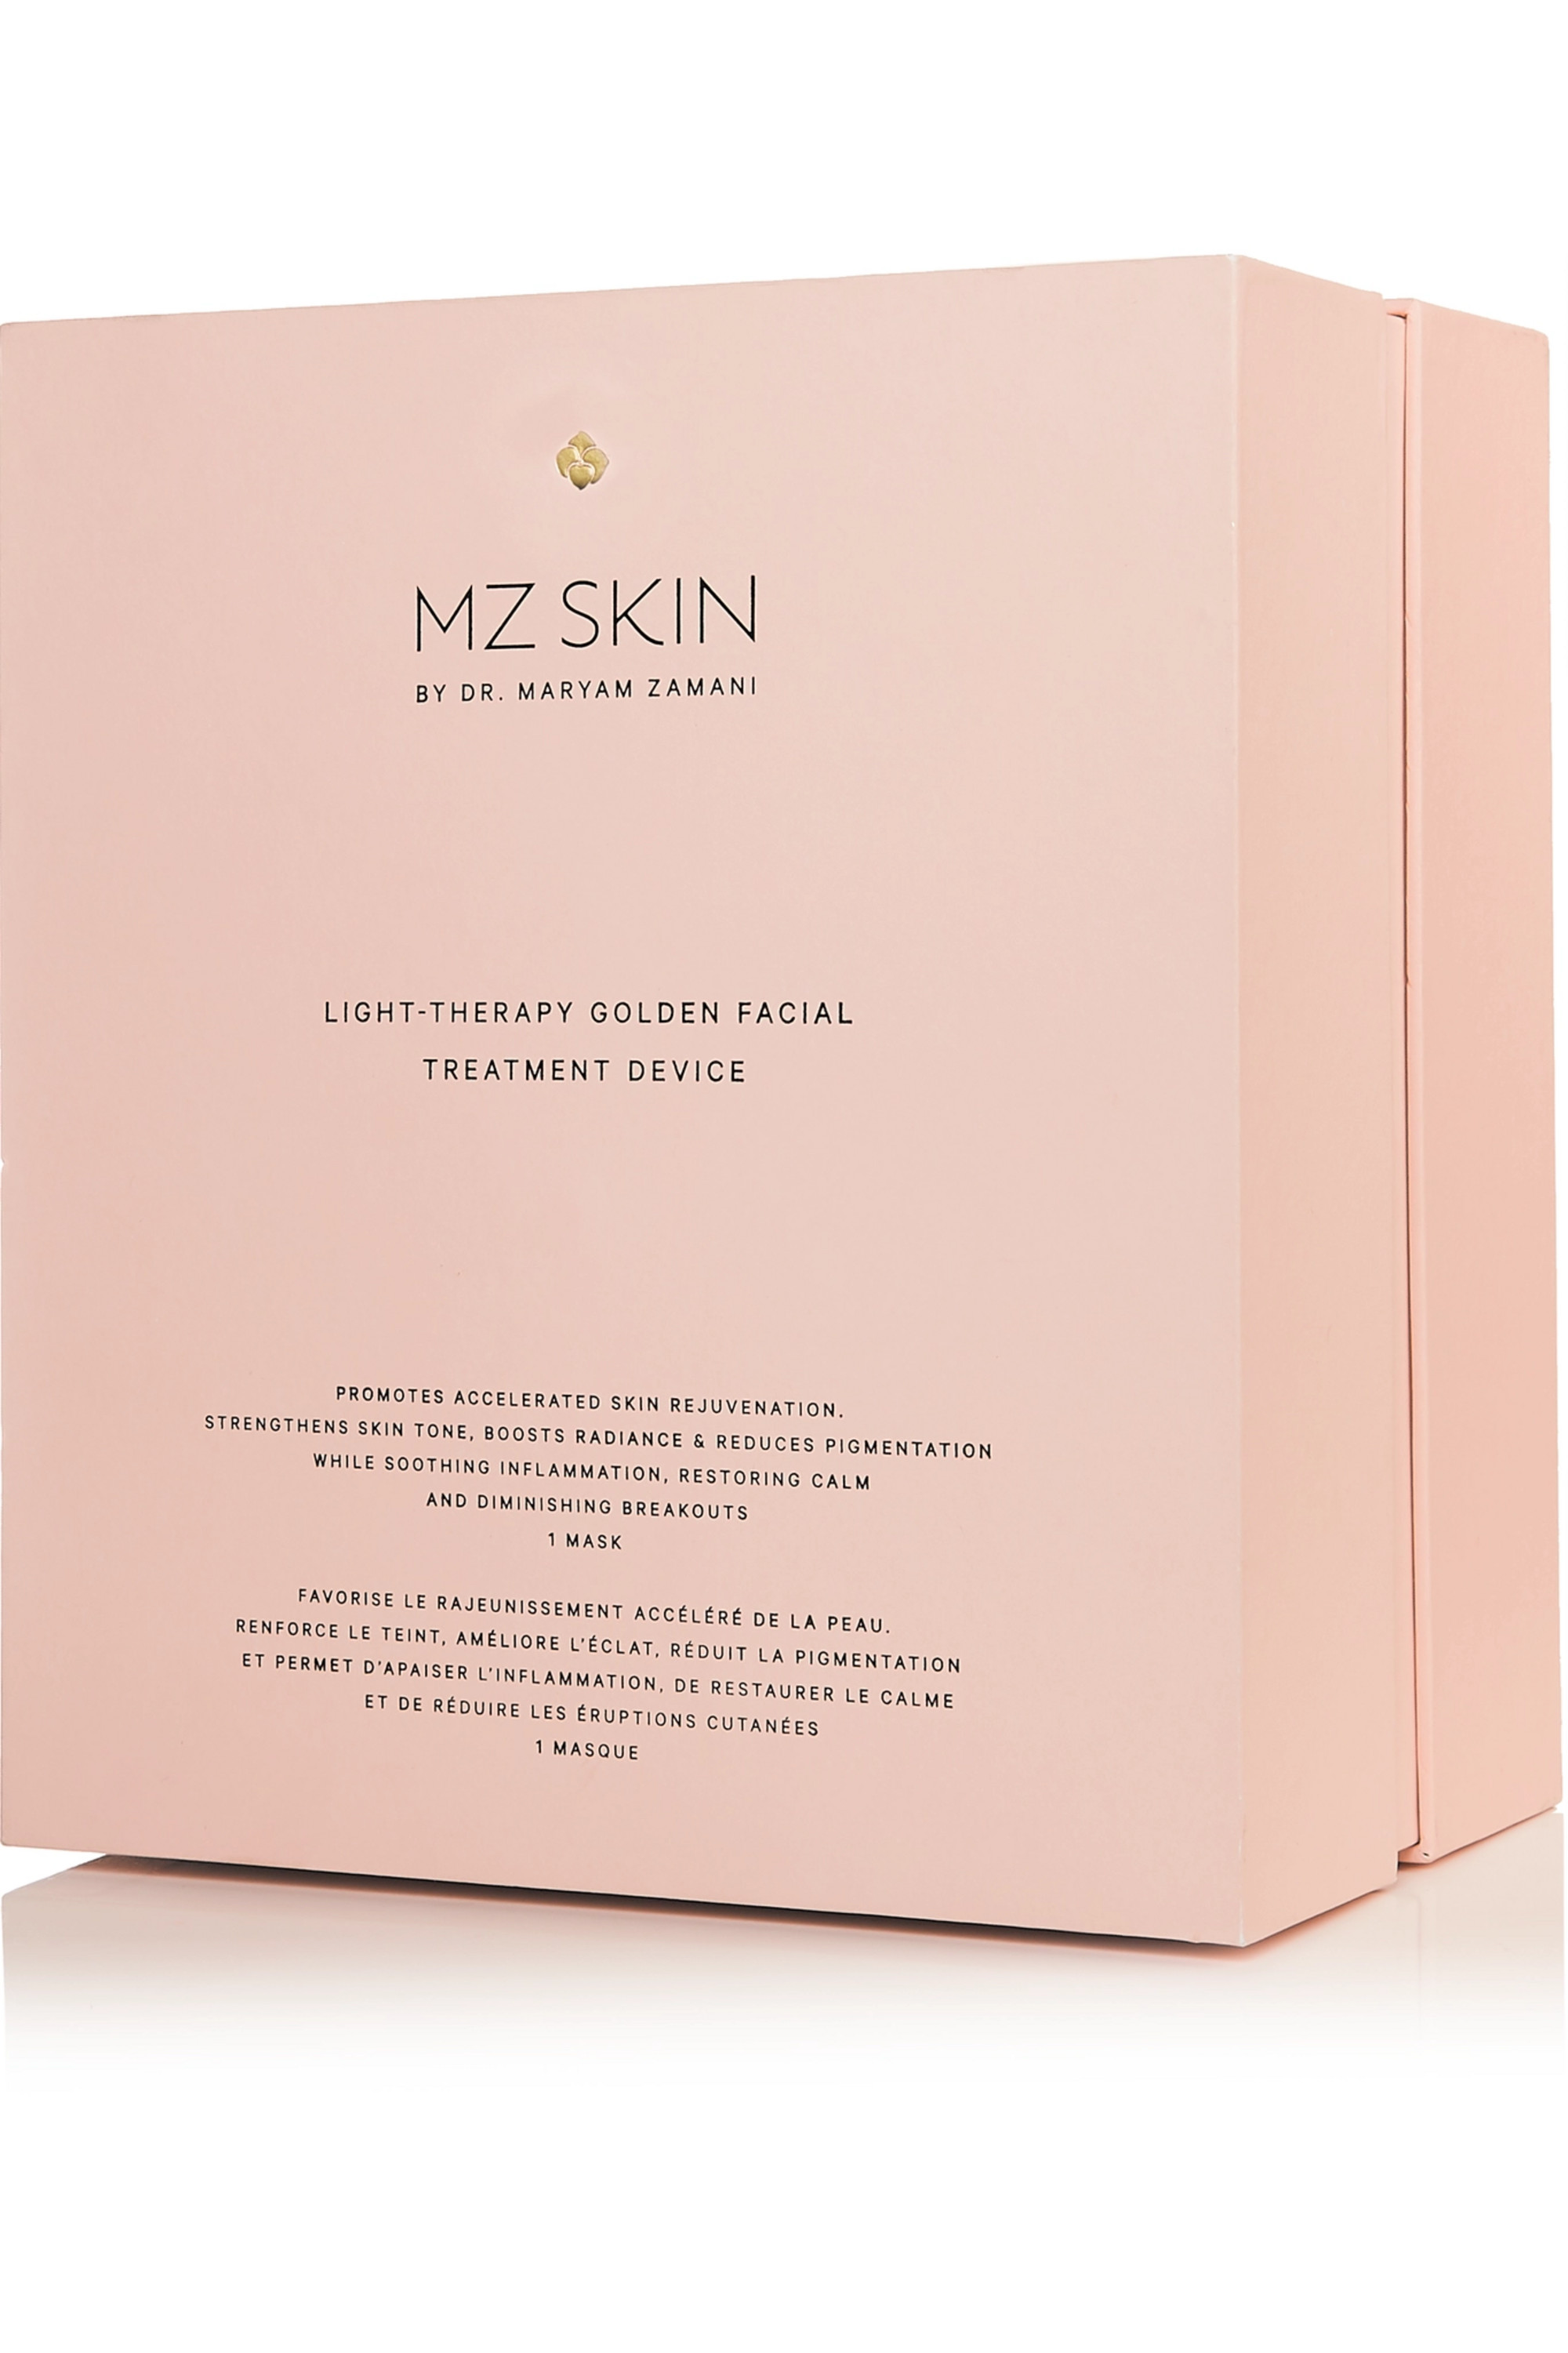 MZ Skin Light-Therapy Golden Facial Treatment Device